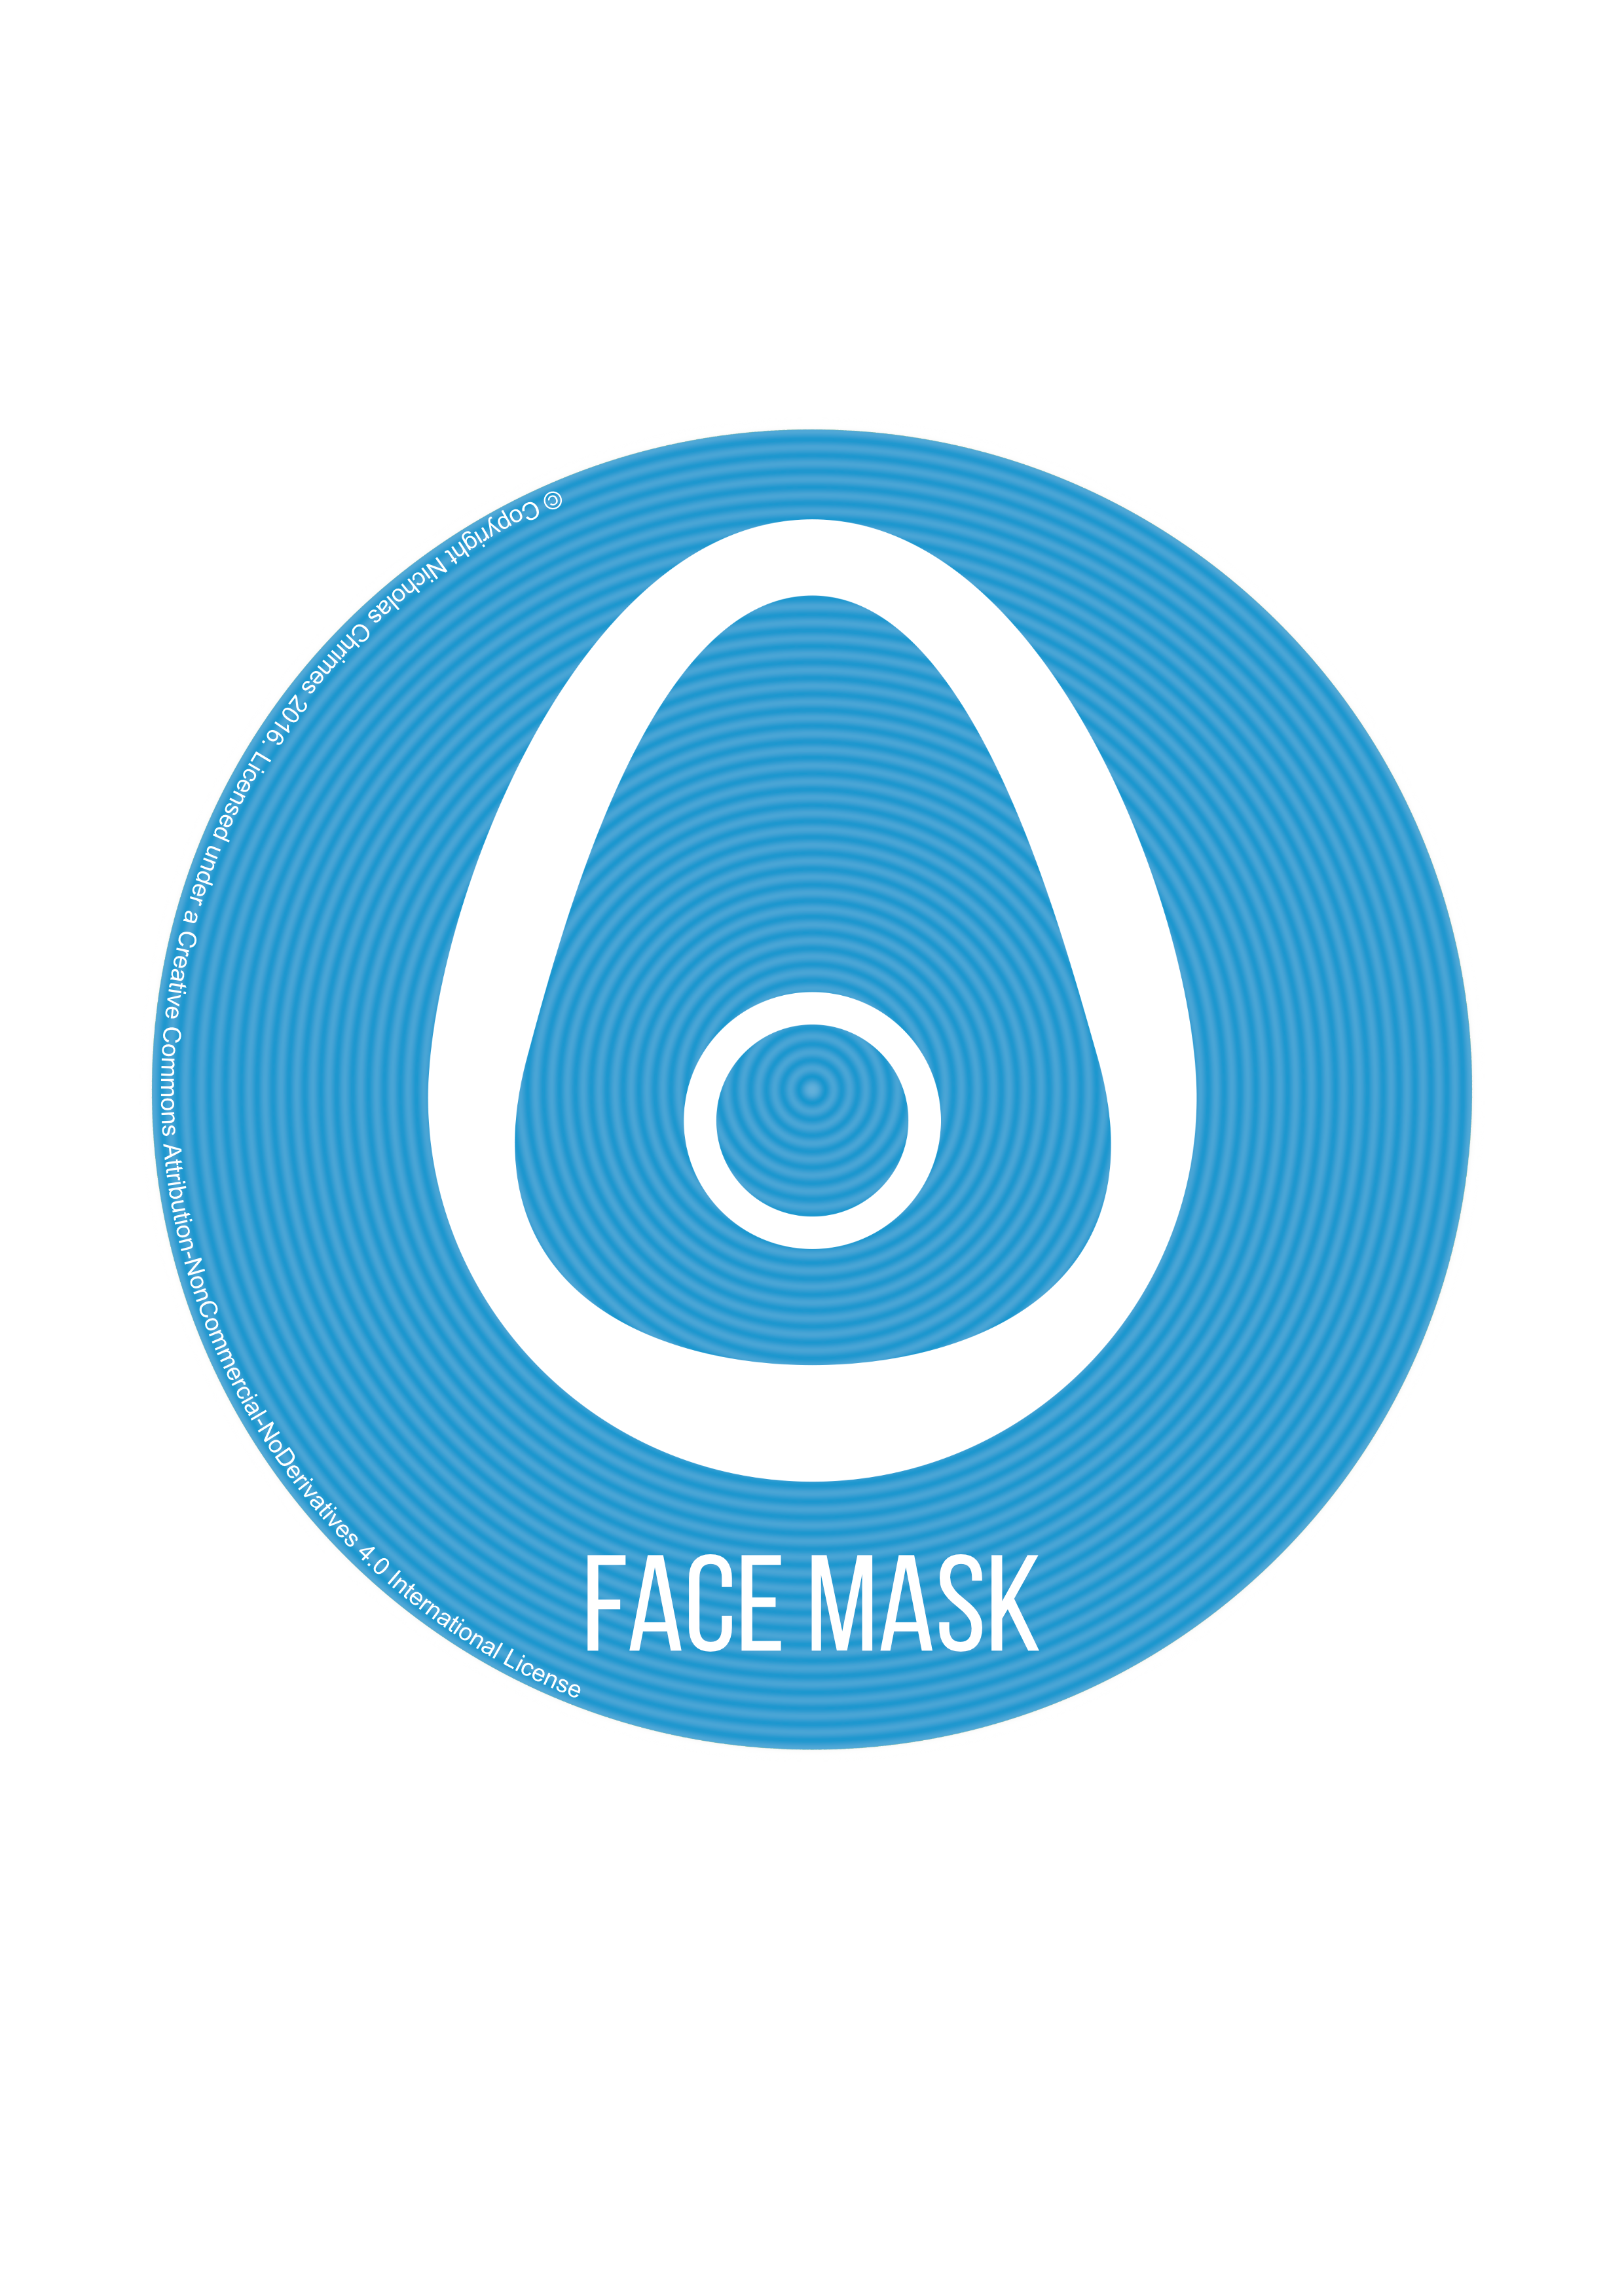 Face Mask Icon - with text